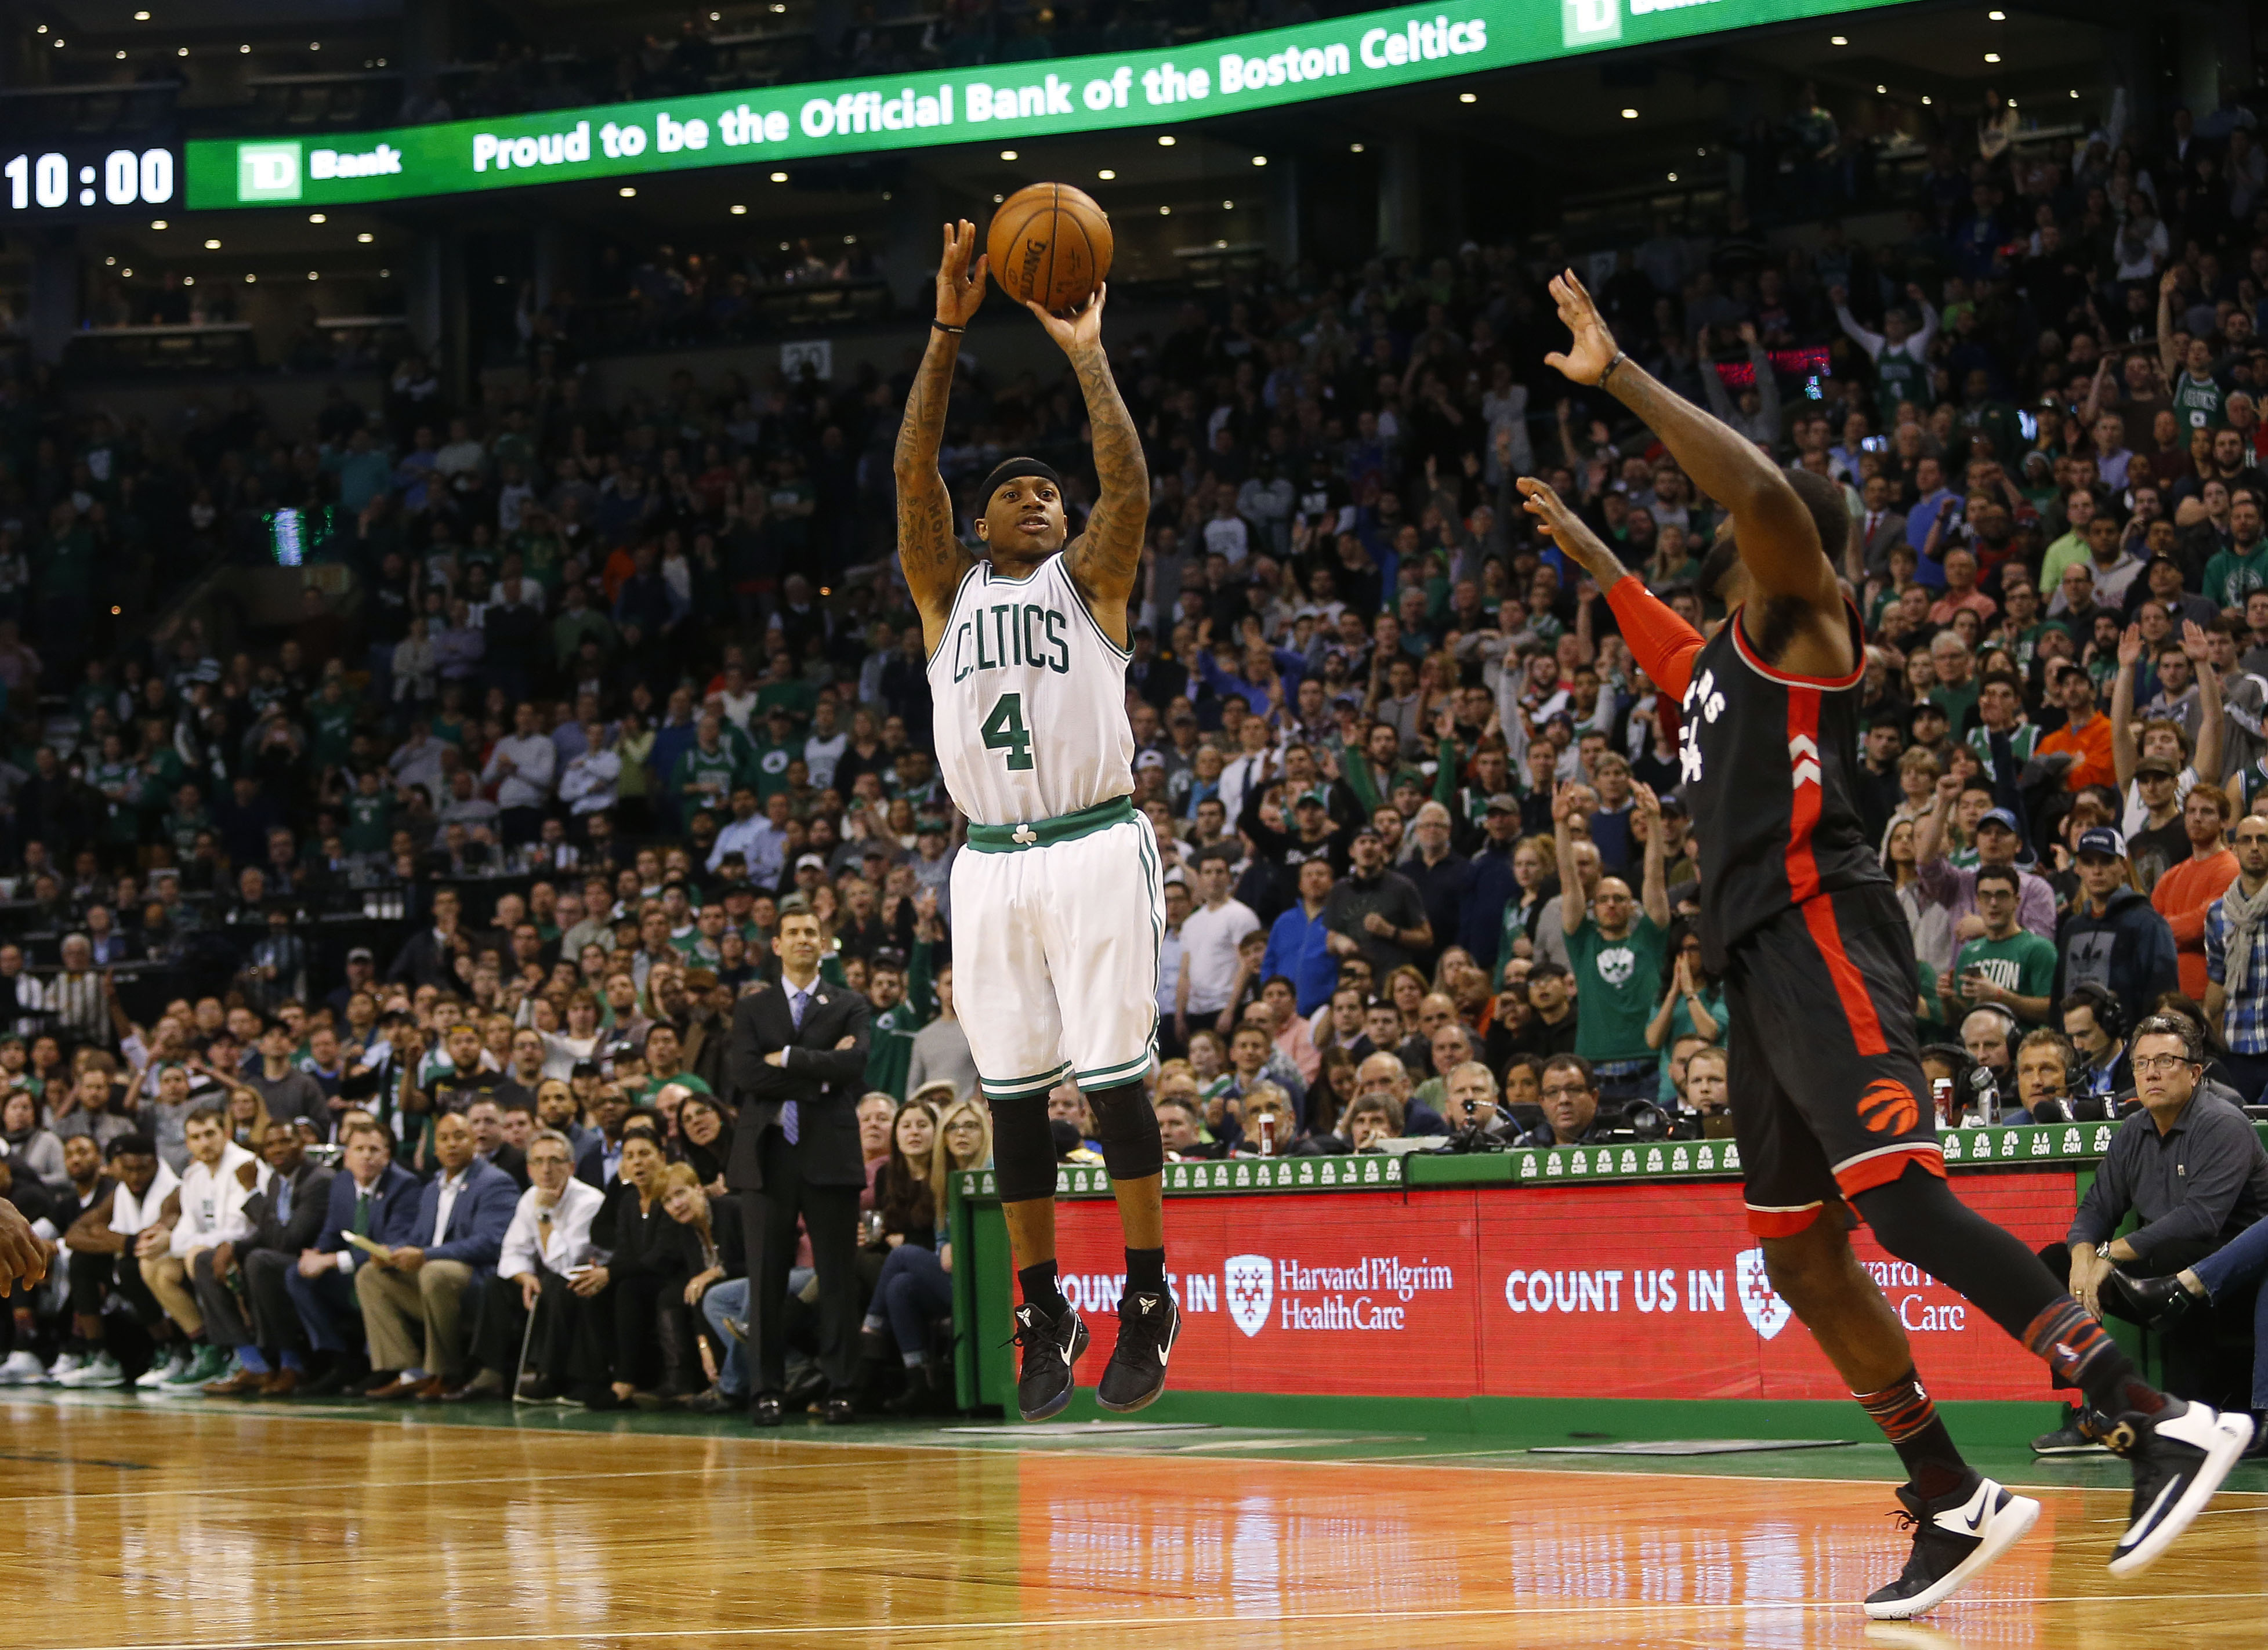 Feb 1, 2017; Boston, MA, USA; Boston Celtics guard Isaiah Thomas (4) hits a shot past Toronto Raptors forward Patrick Patterson (54) late in the fourth quarter at TD Garden. Mandatory Credit: Winslow Townson-USA TODAY Sports